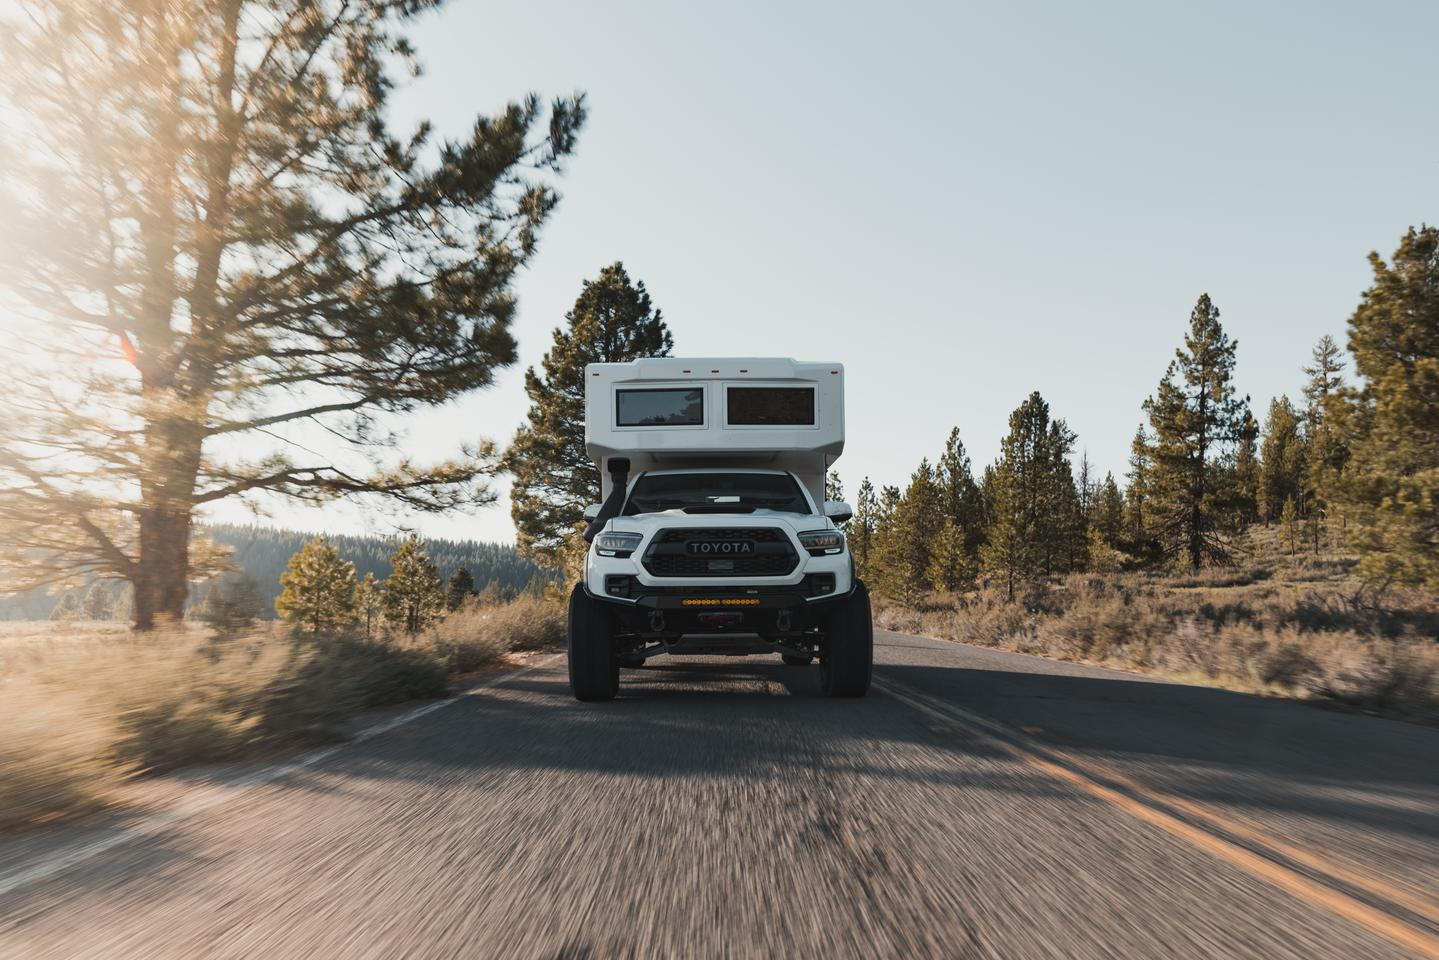 TruckHouse motors forward with its Toyota Tacoma BCT off-road expedition camper